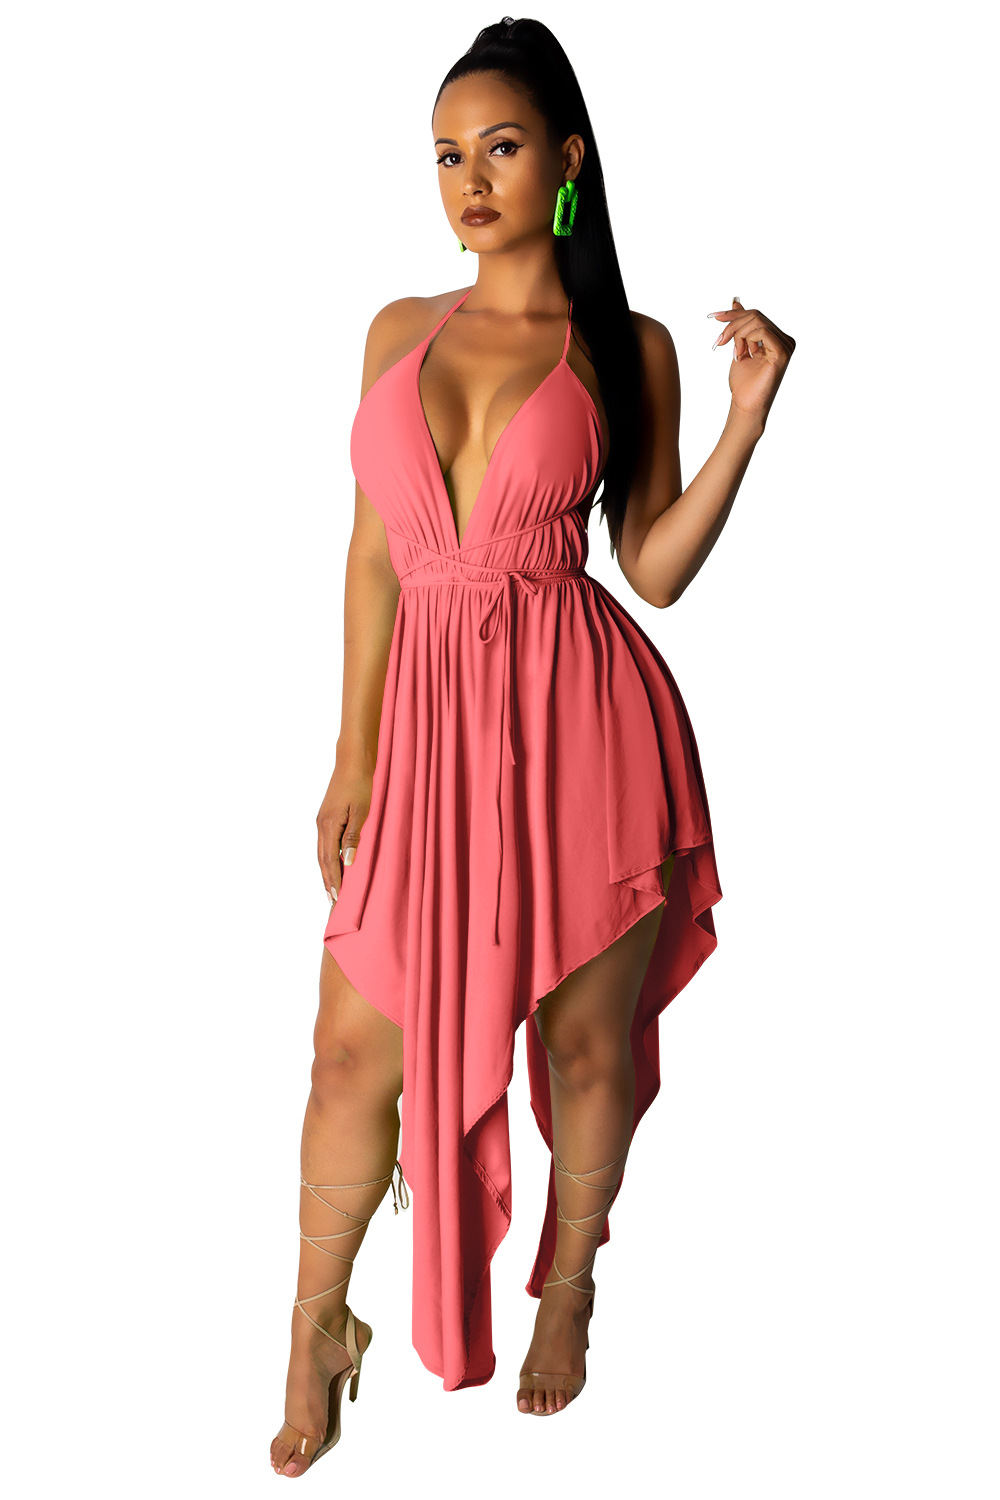 2019 European And American Women Strap Sexy Backless Irregular Dress Summer Beach Dress in Dresses from Women 39 s Clothing